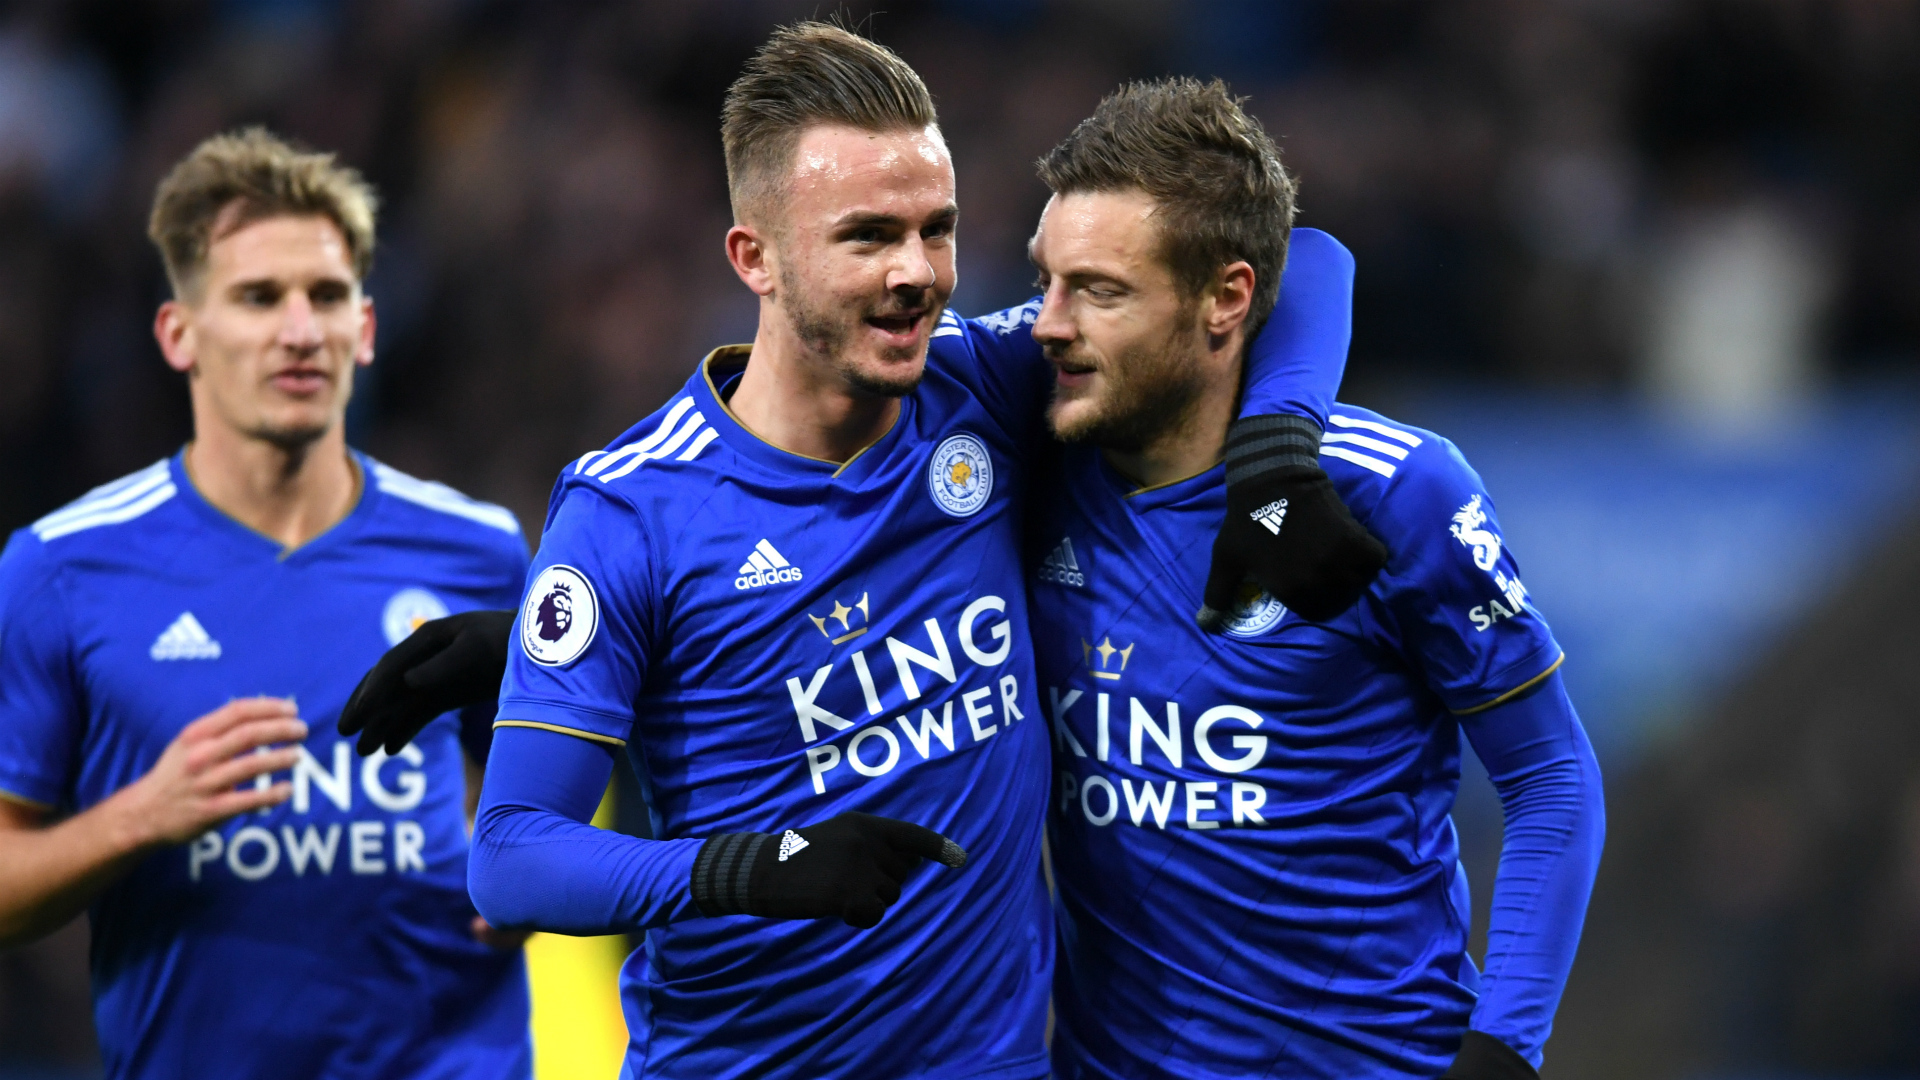 Leicester City vs. Watford - Football Match Report